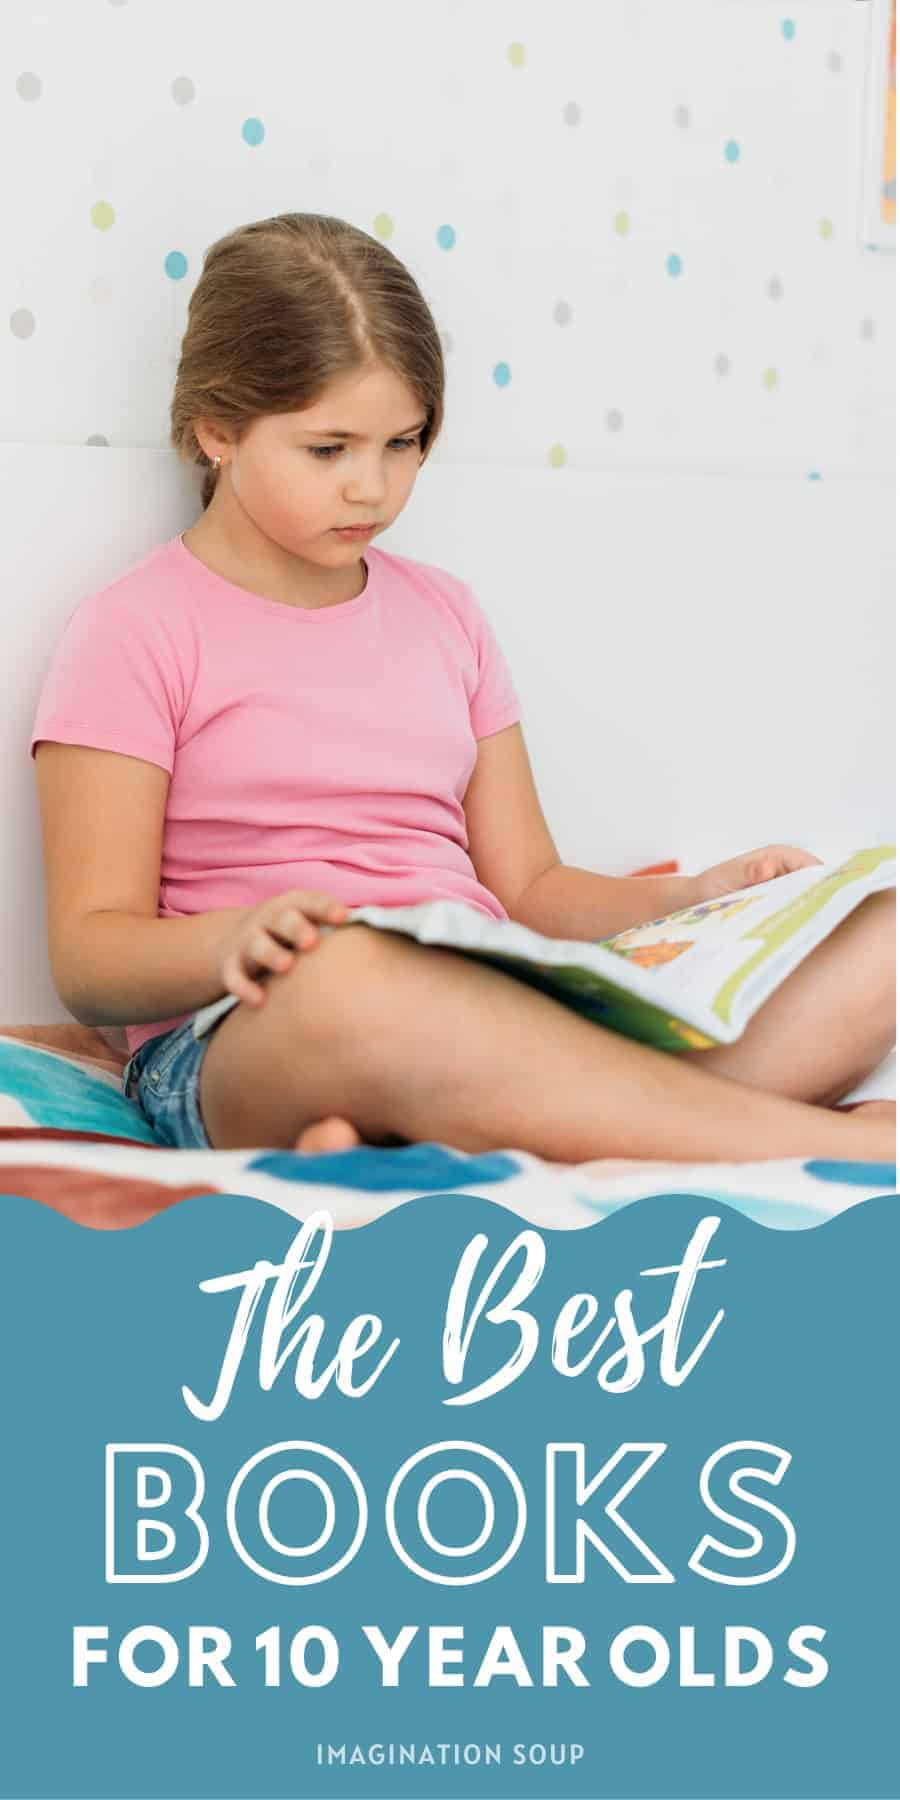 the best books for 10 year olds